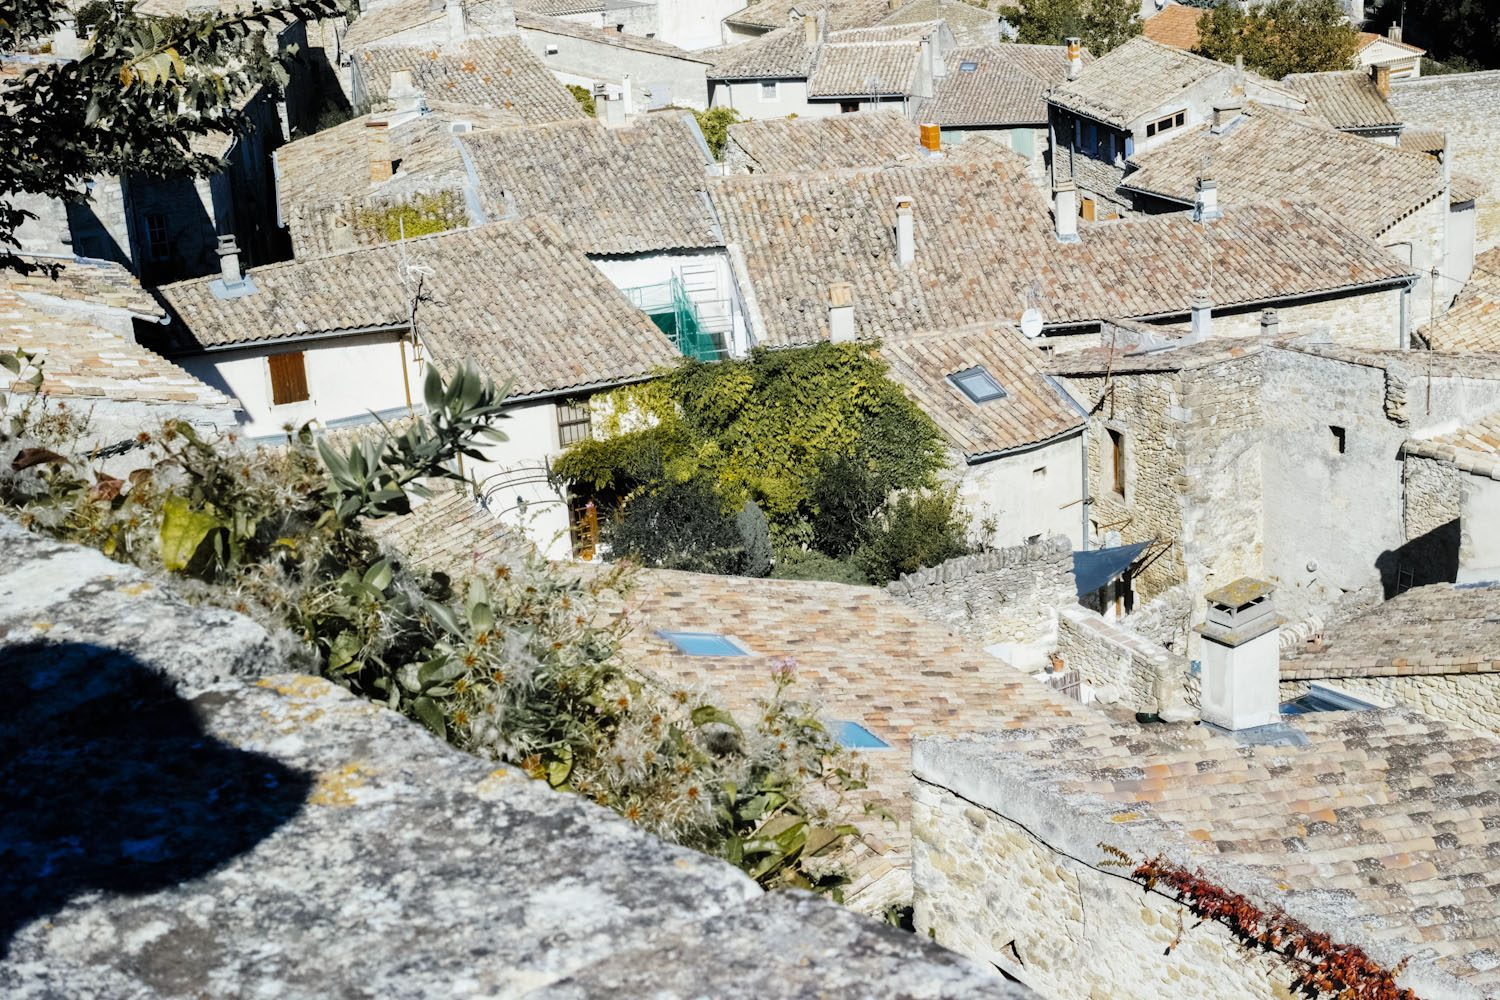 themood_drome_october_france_thevoyageur010